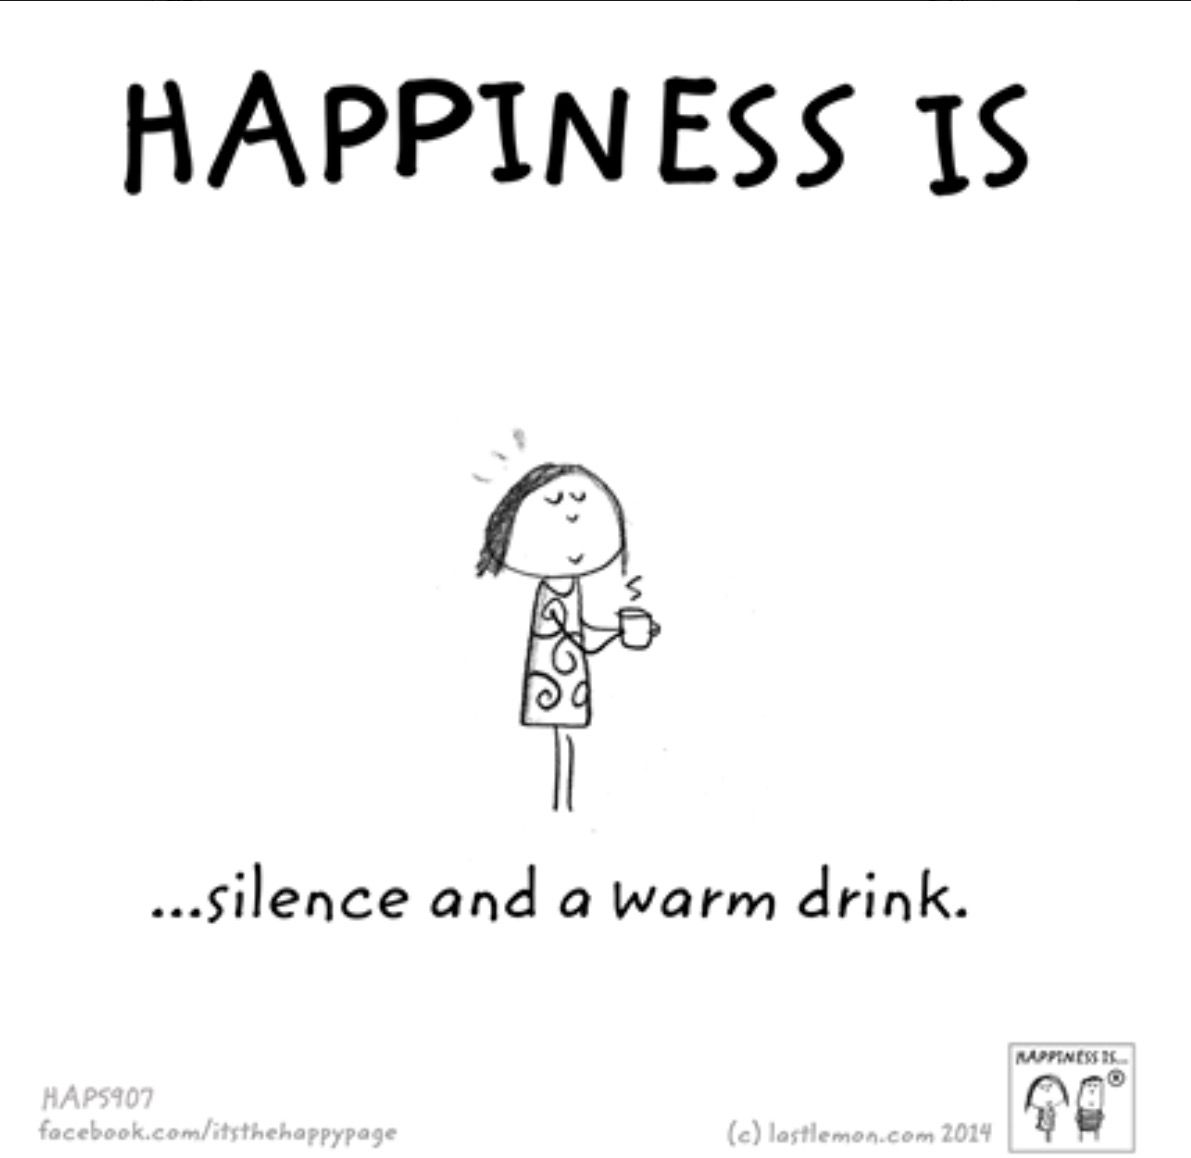 Happiness loves silence